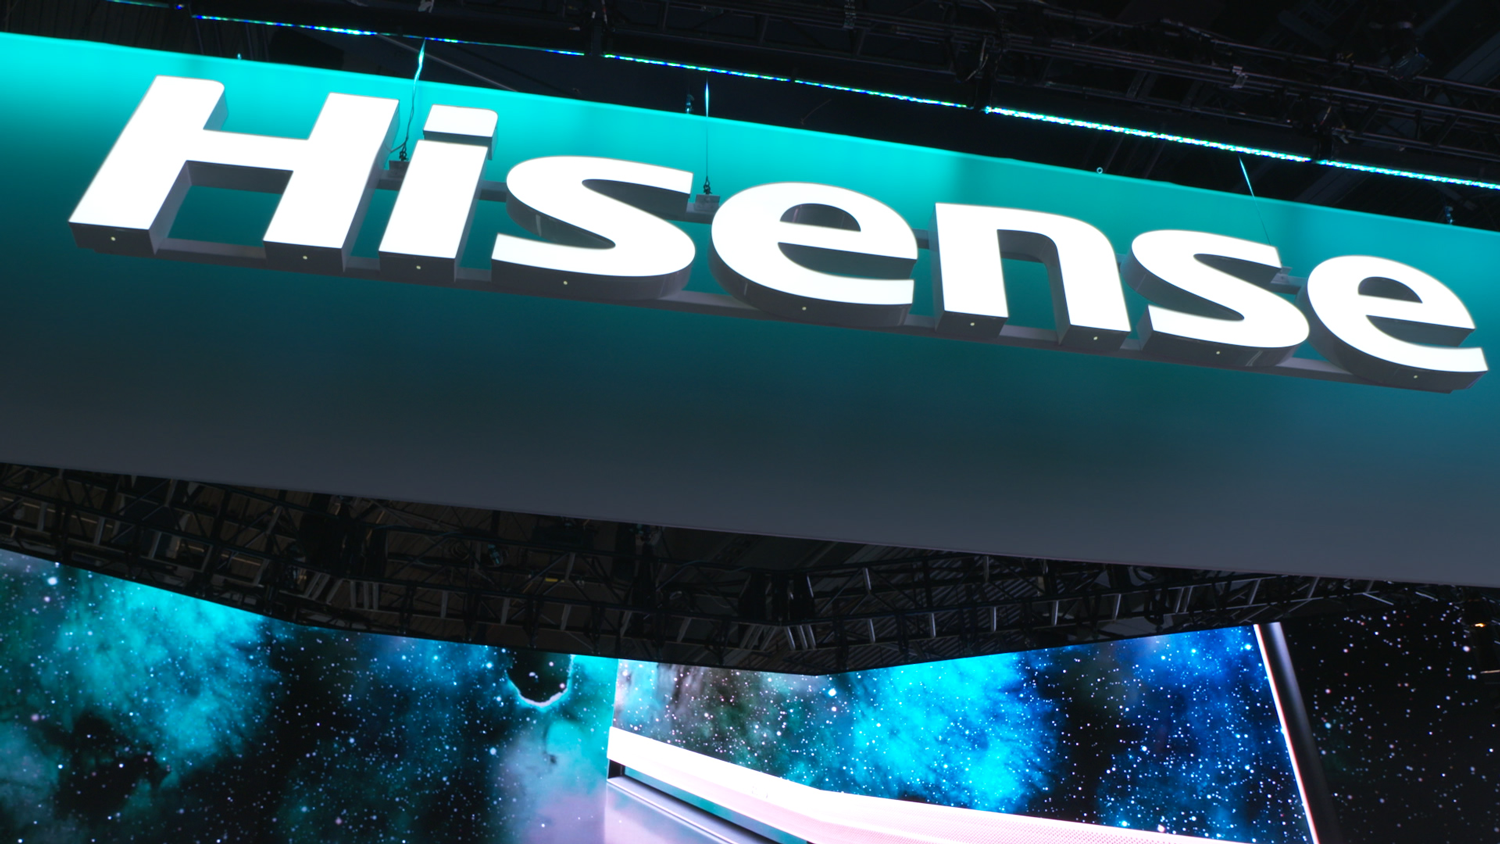 Hisnse logo on CES stand